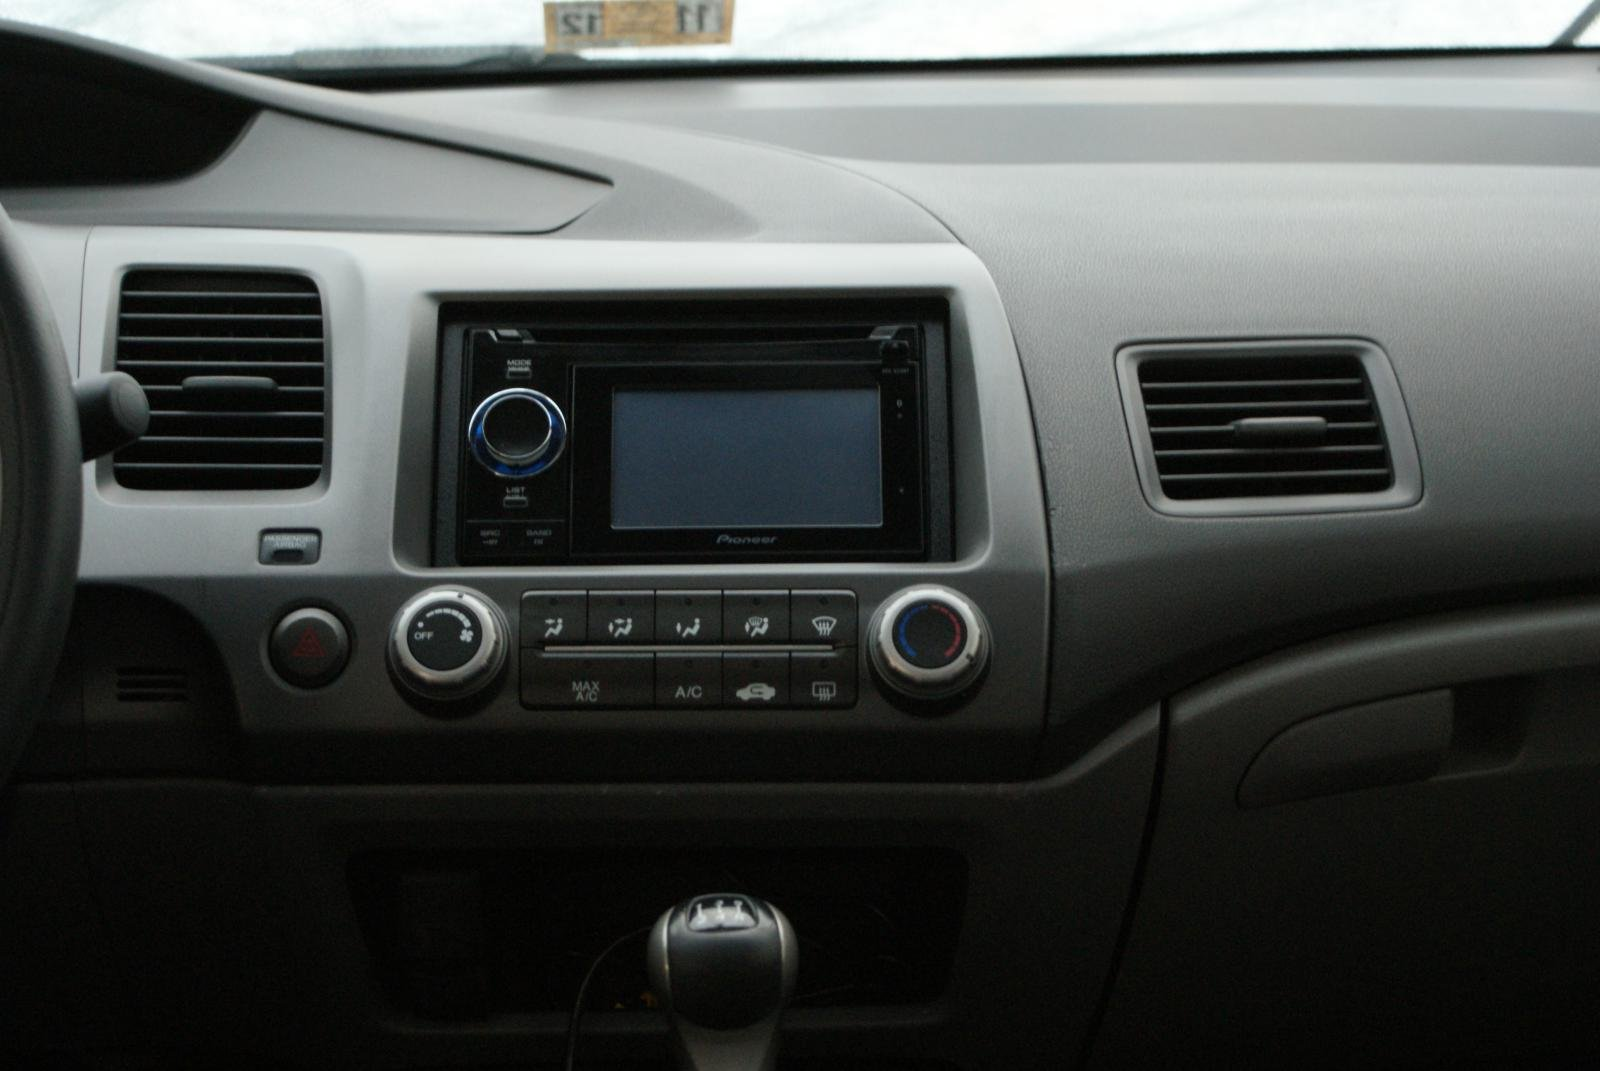 Diy Aftermarket Radio Install In An Ex Page 21 8th Generation 2010 Honda Civic Wiring Harness Gps 252